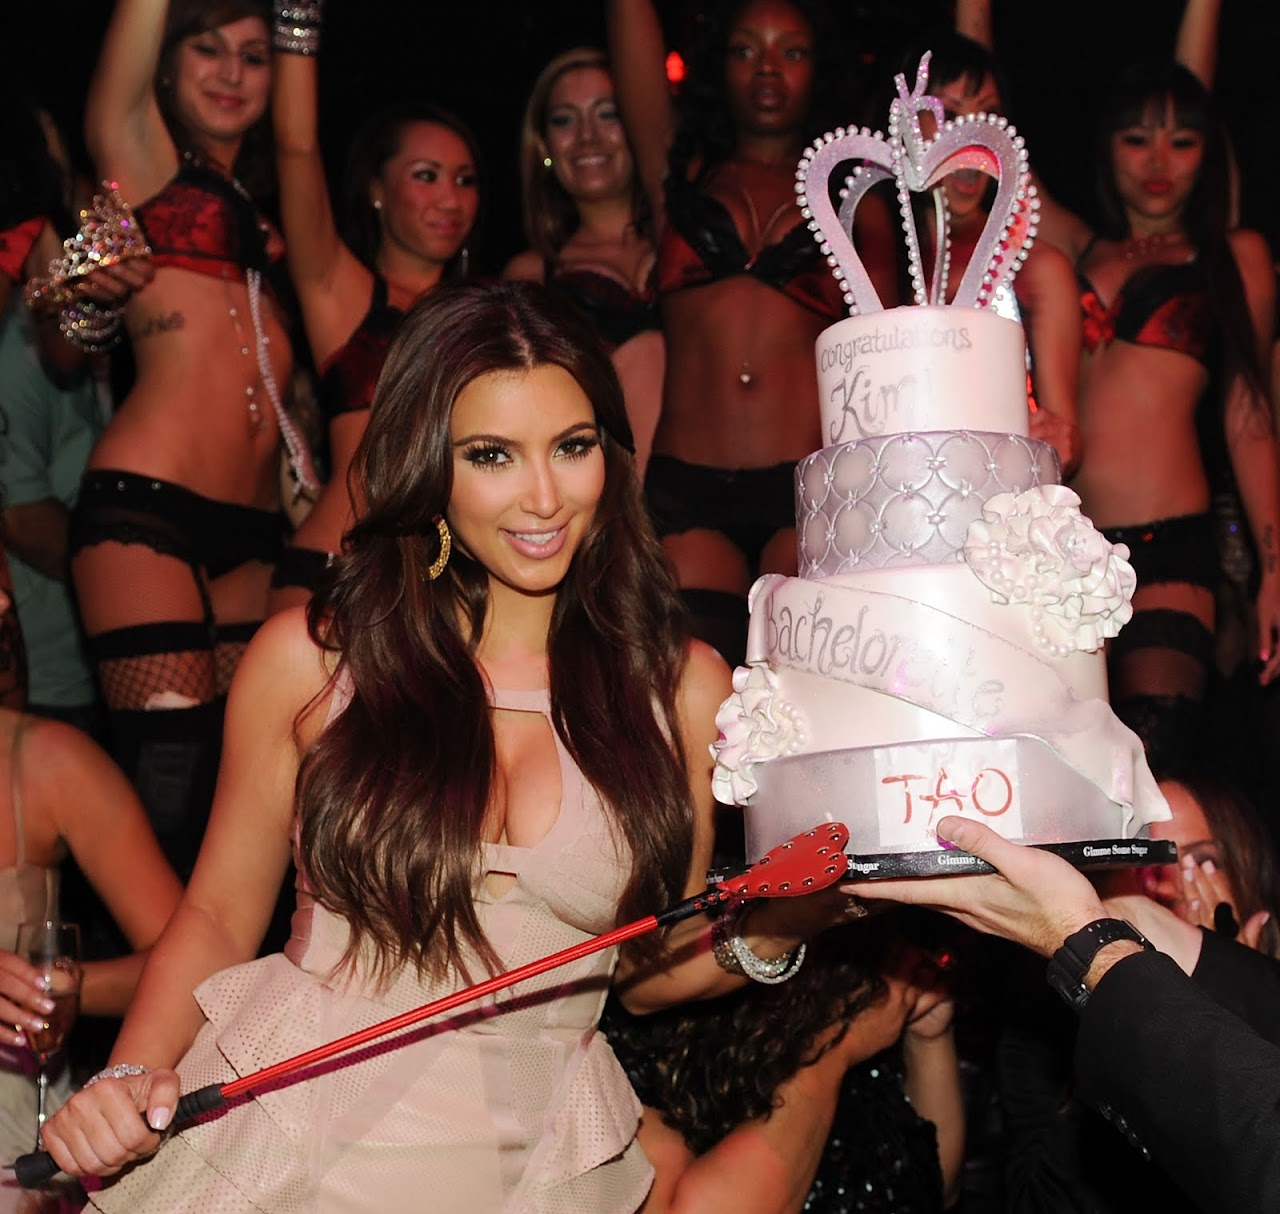 Kim Kardashian's Bachelorette Party at Tao